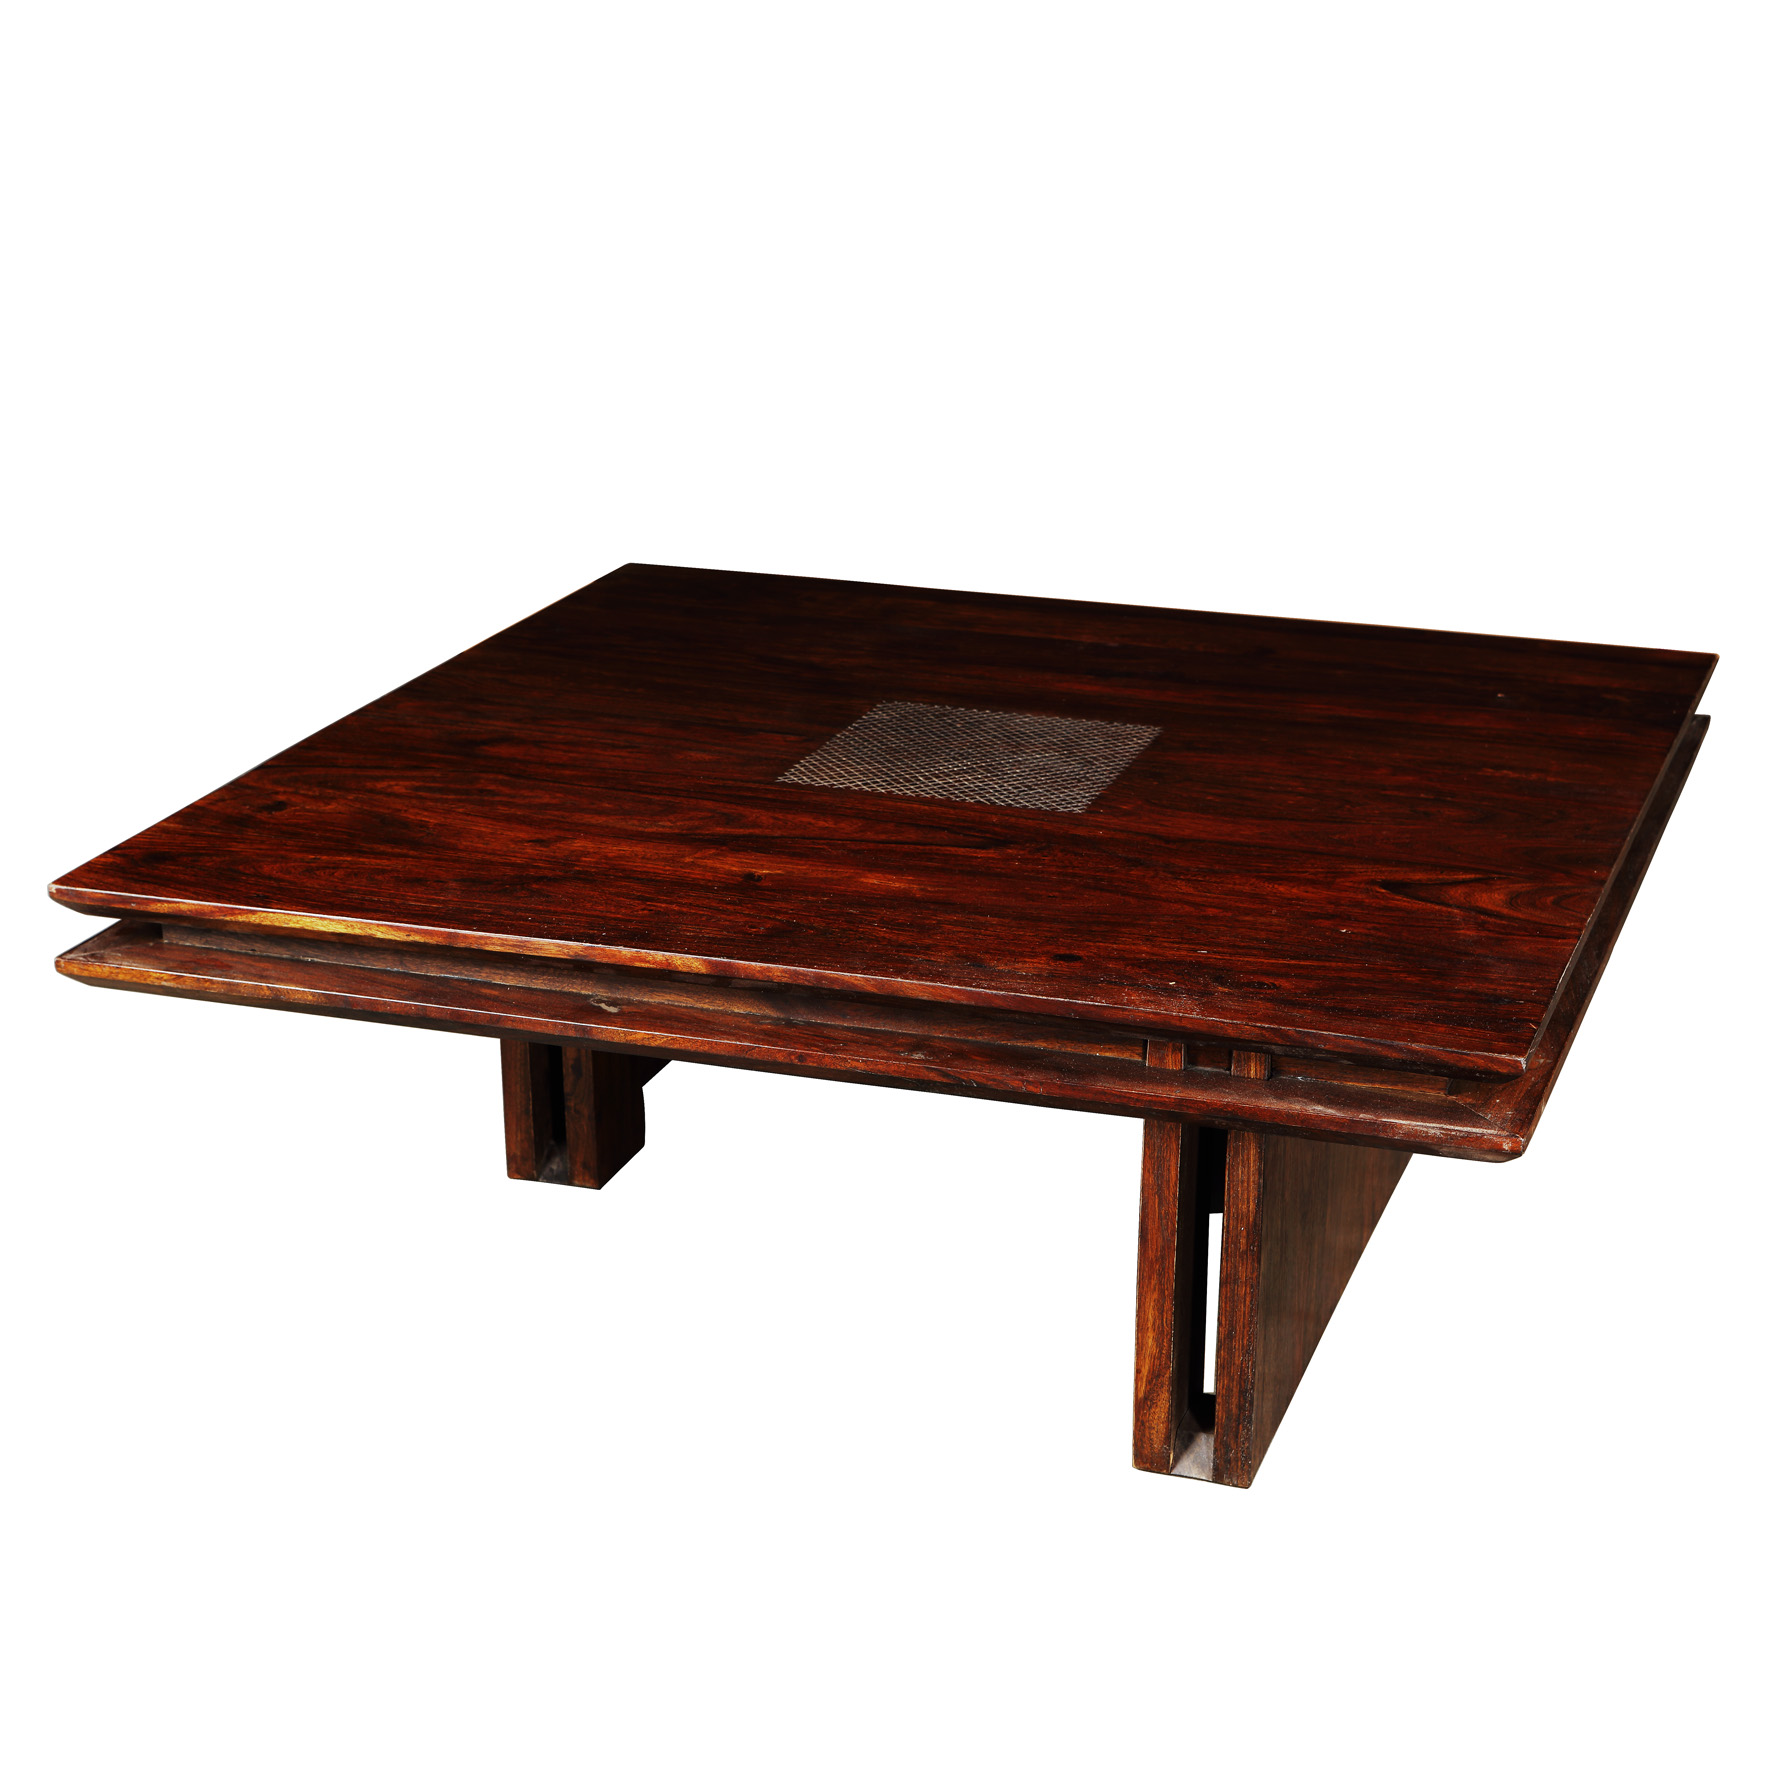 La table basse tribal - Table basse coloniale ...